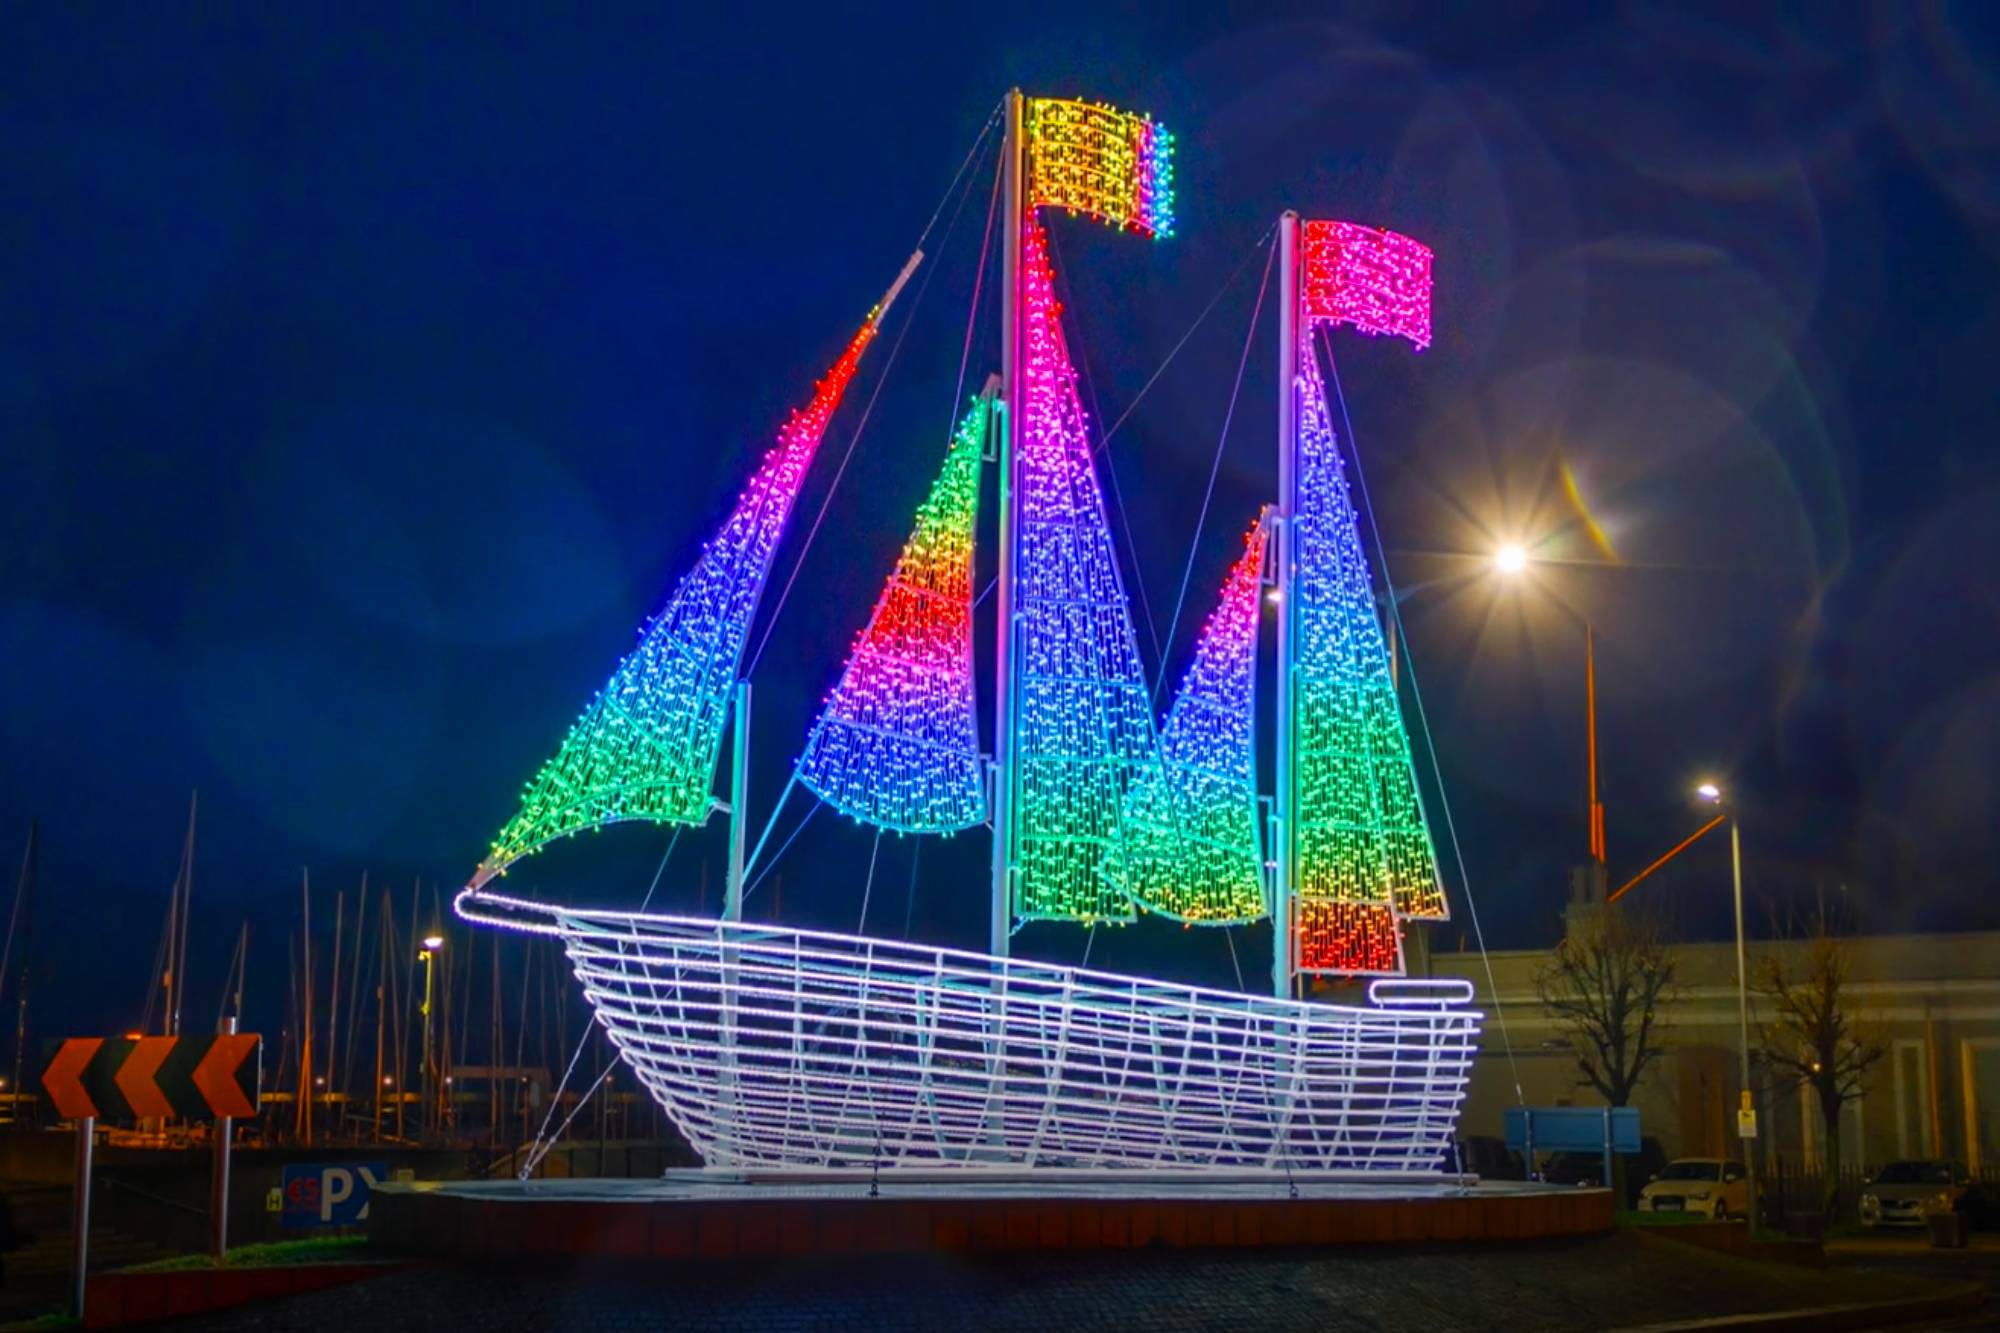 Dun Laoghaire Harbour Ship Twinkly Pro Lighting